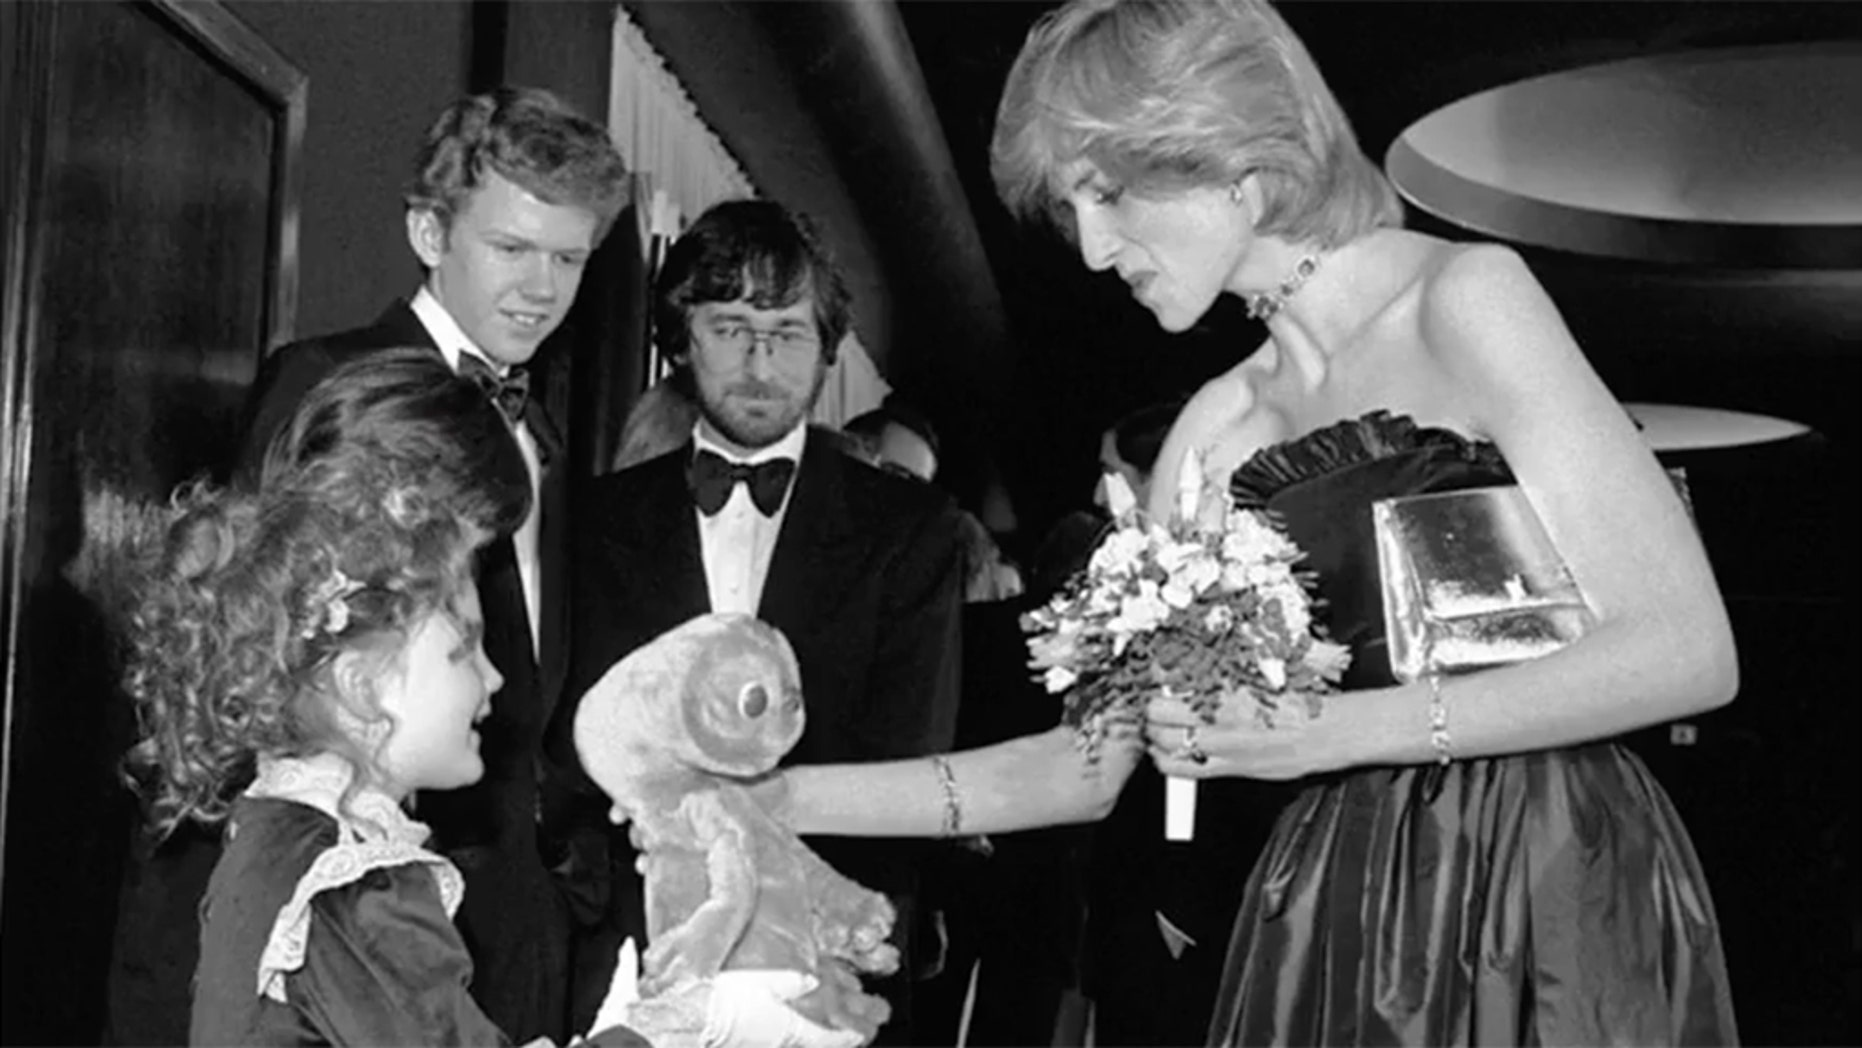 Drew Barrymore, 7, gives Princess Diana a stuffed animal.